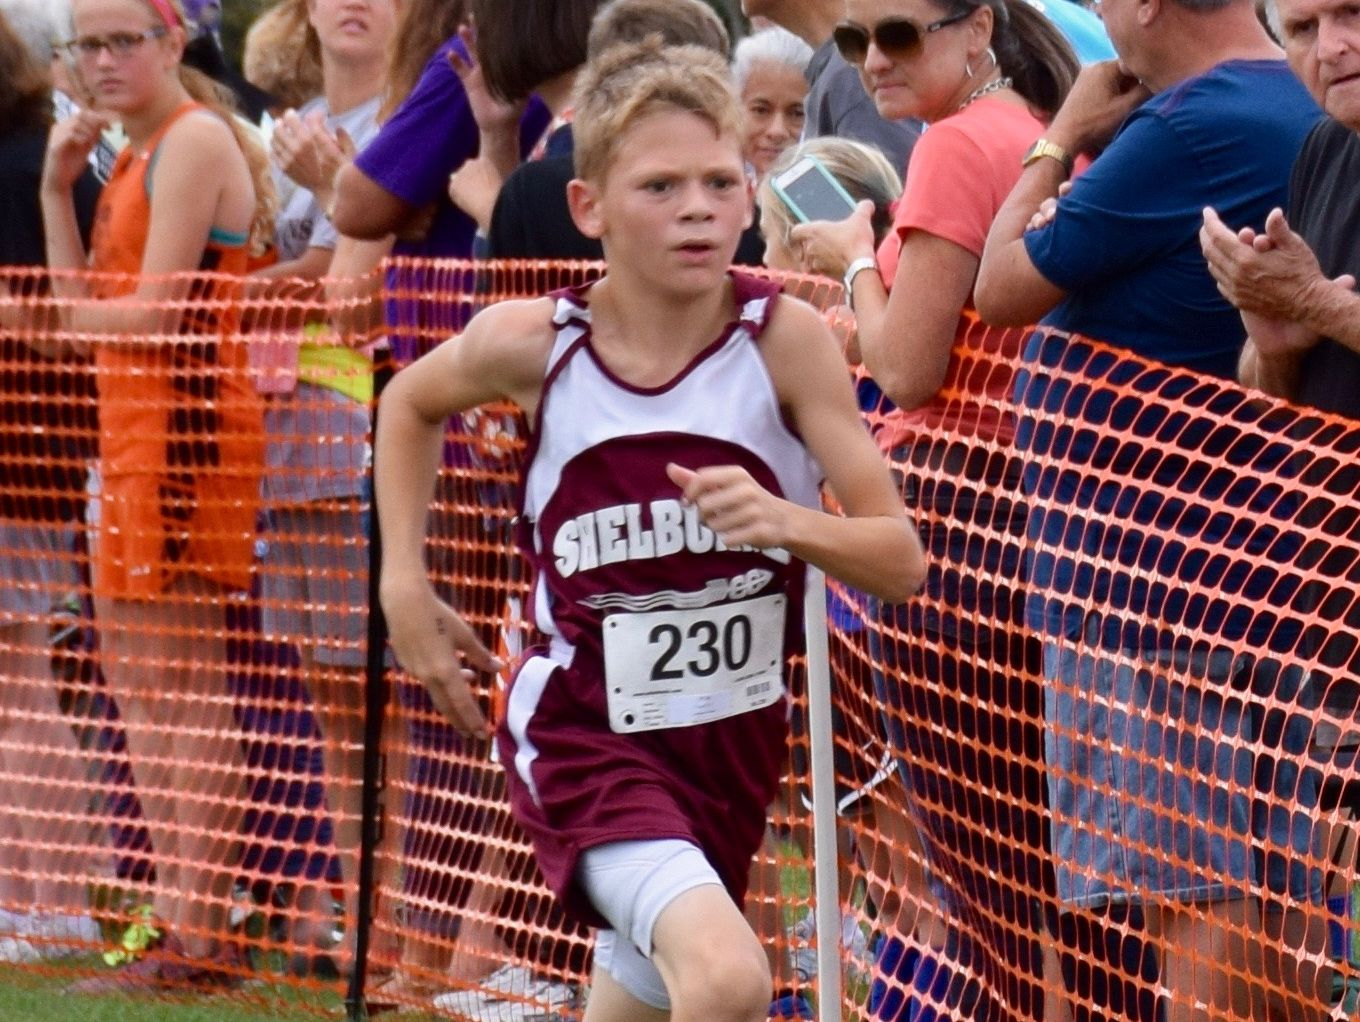 T.J. Connor of Shelburne Middle School sprints to the finish of the middle school boys race at the Augusta County Cross Country Invitational, held at Wilson Workforce and Rehabilitation Center in Fishersville, Va., on Saturday, Sept. 17, 2016. Connor finished second.